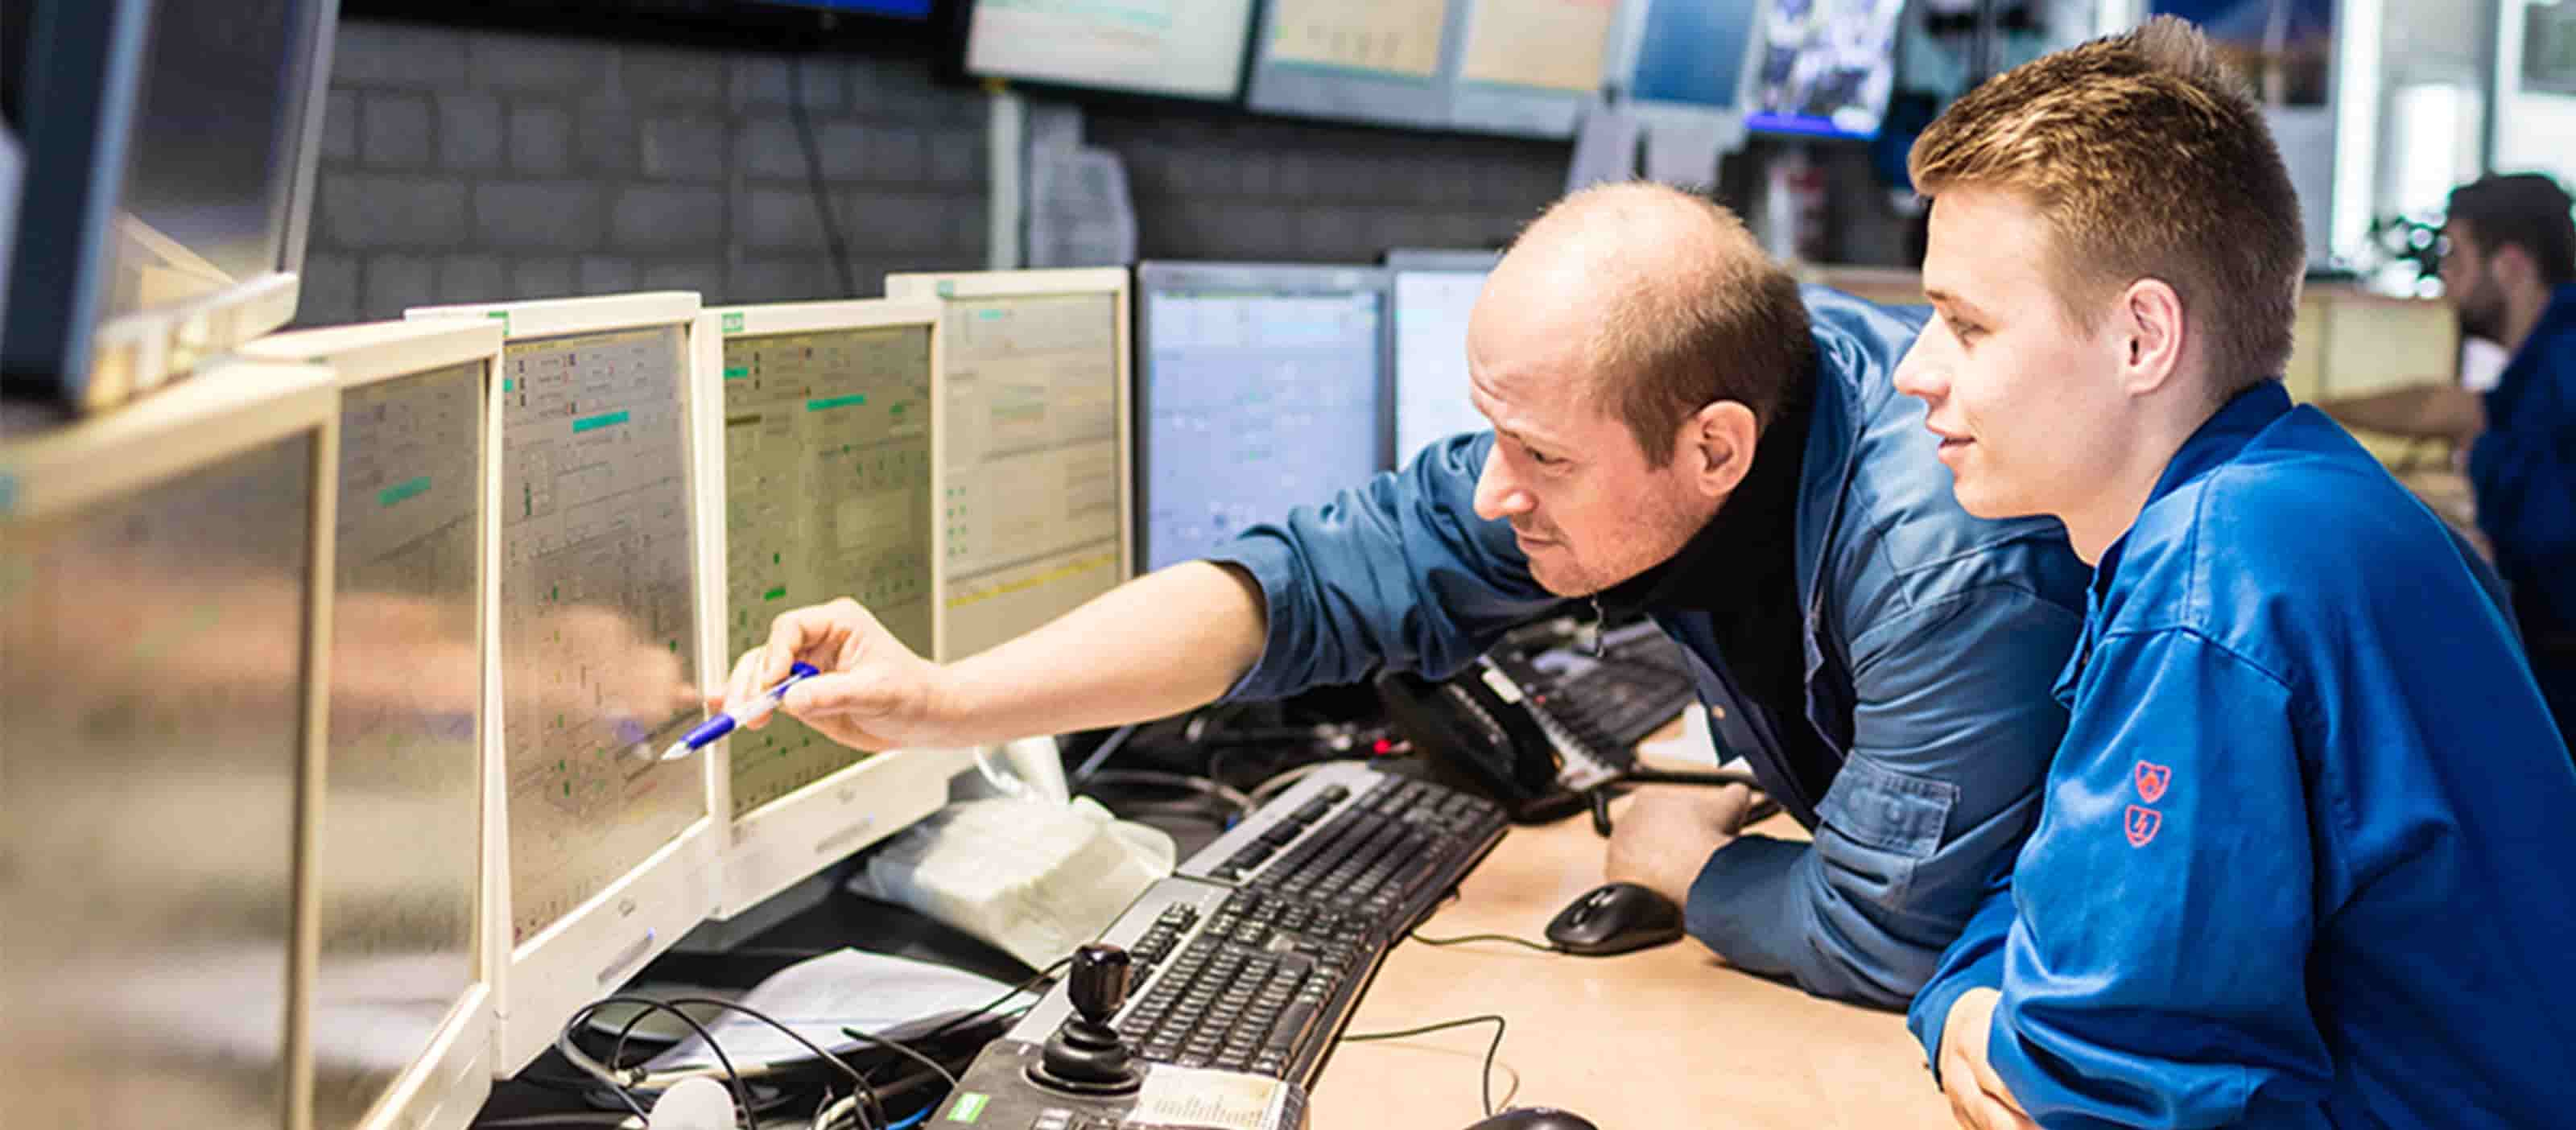 AVR Rotterdam operators in control room | GE Predix APM software